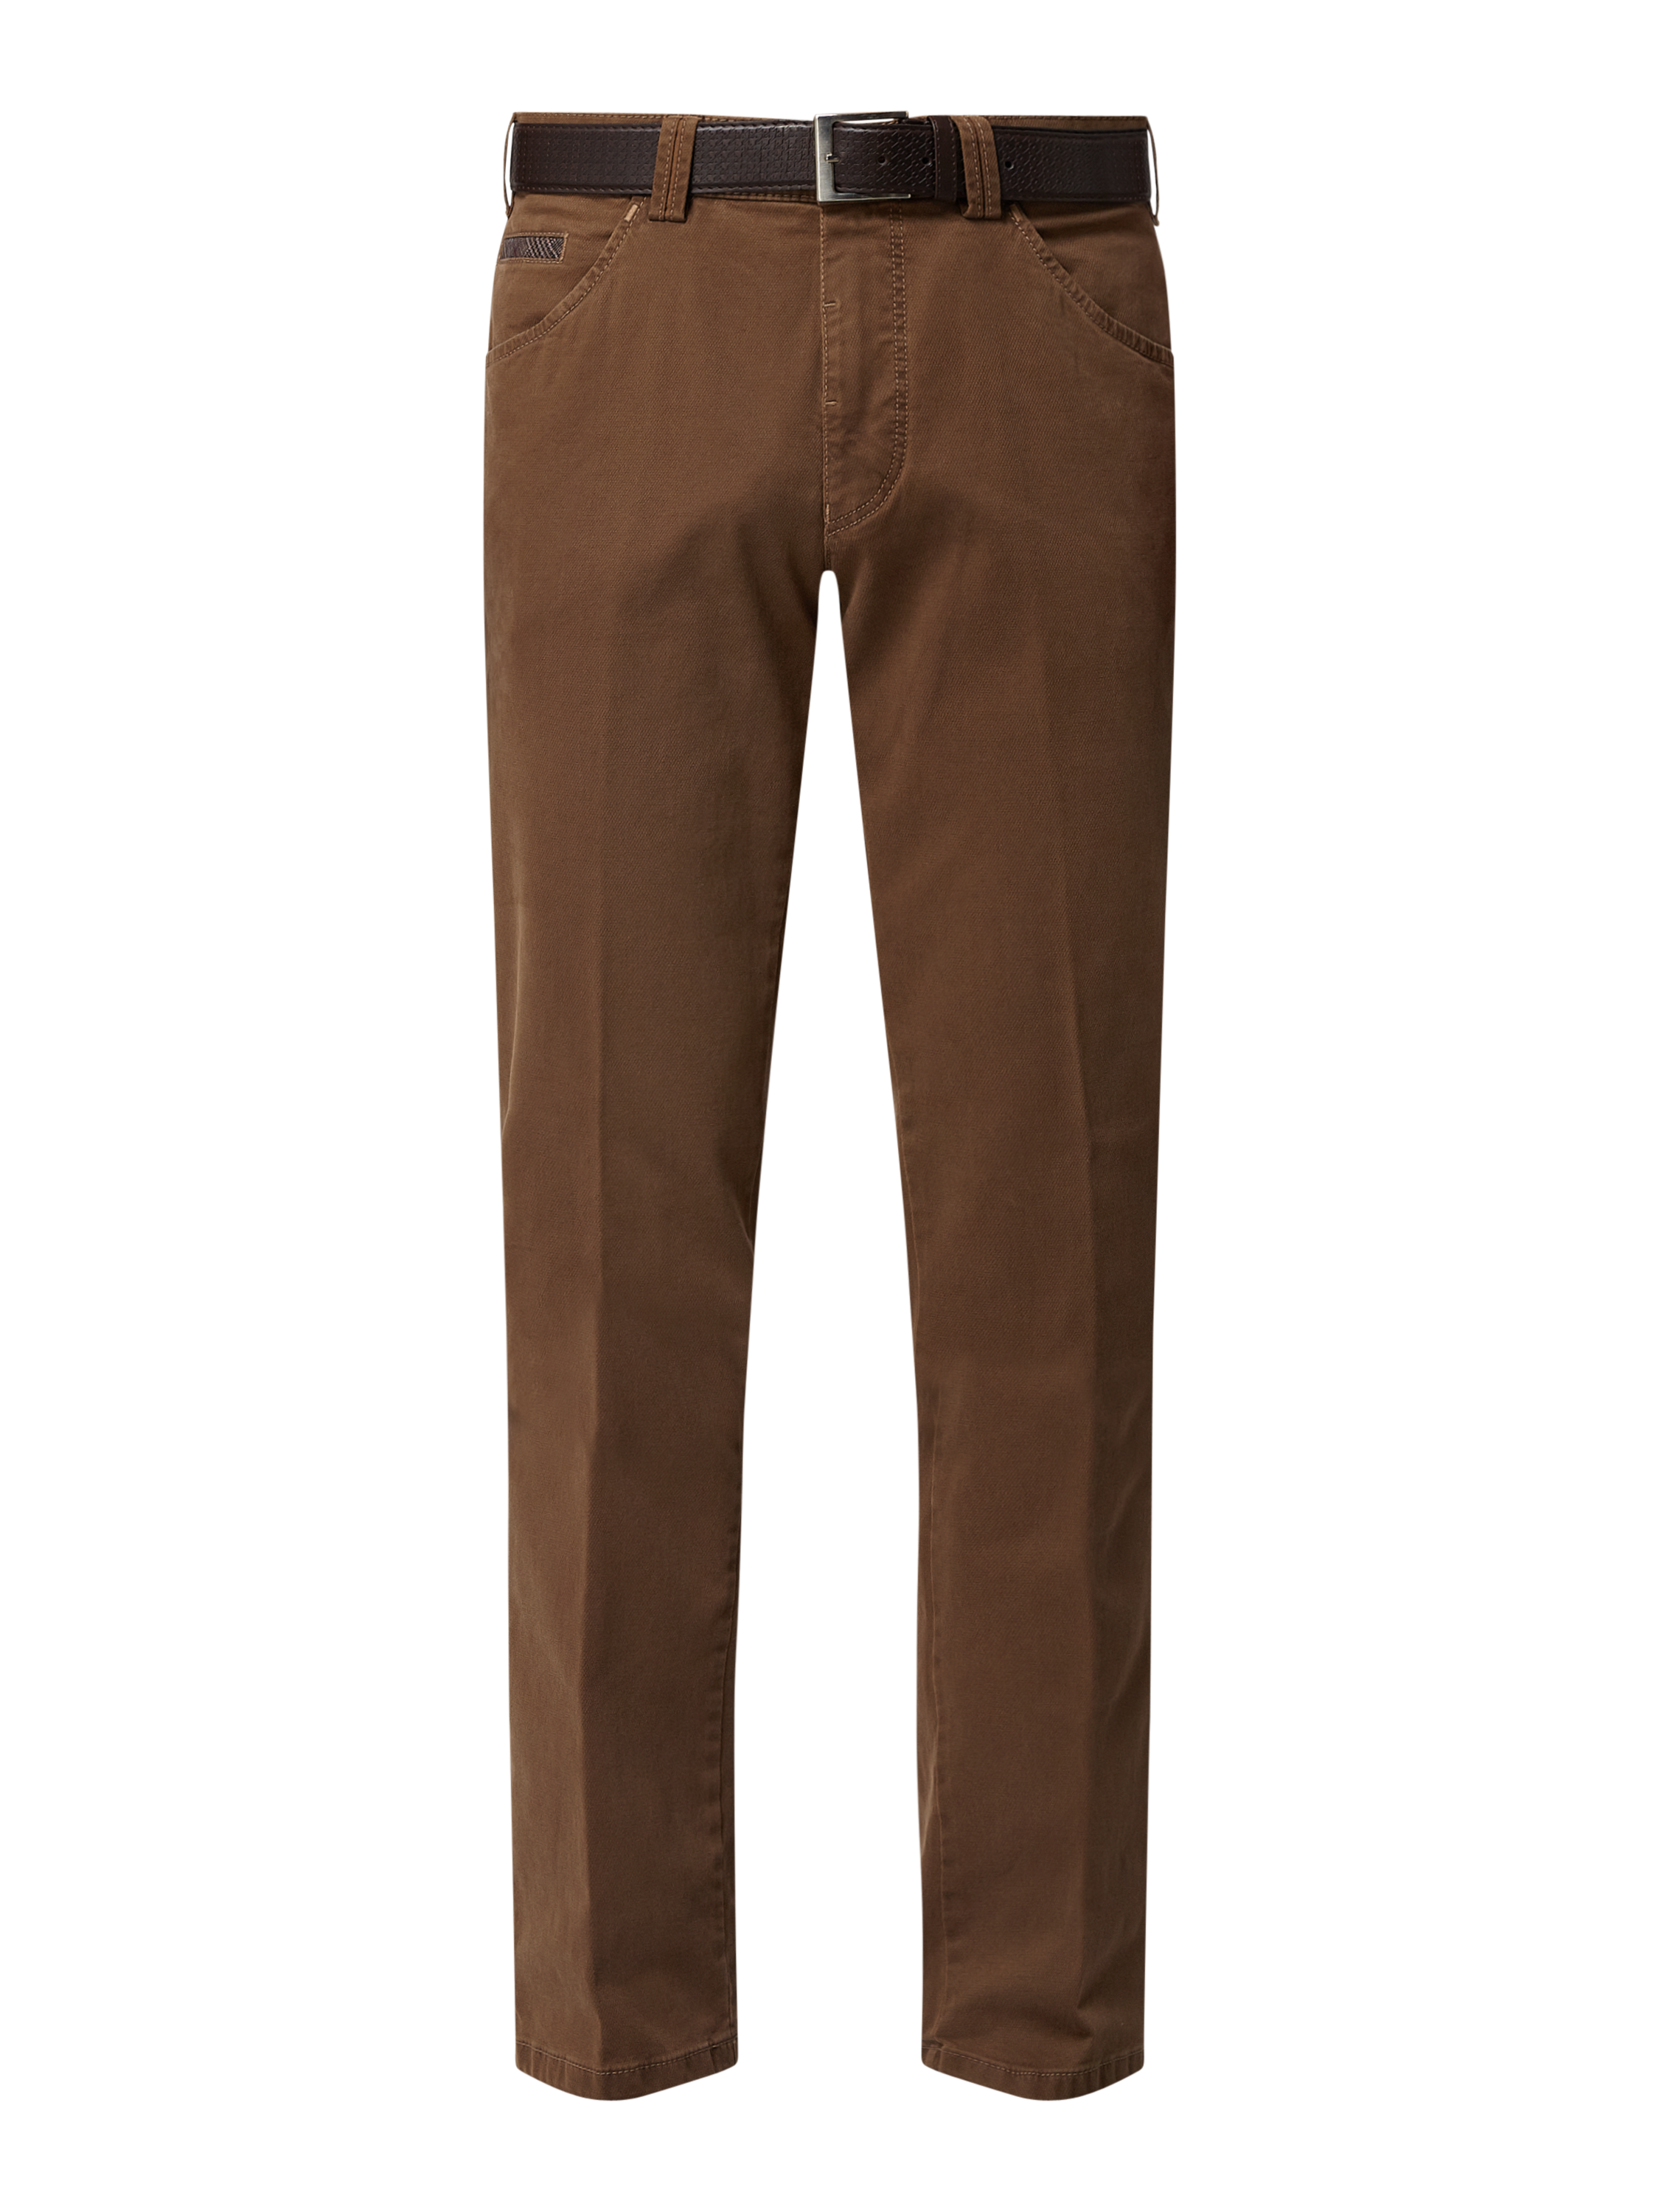 Meyer – Hose mit Stretch Anteil in gerader Passform – Cognac